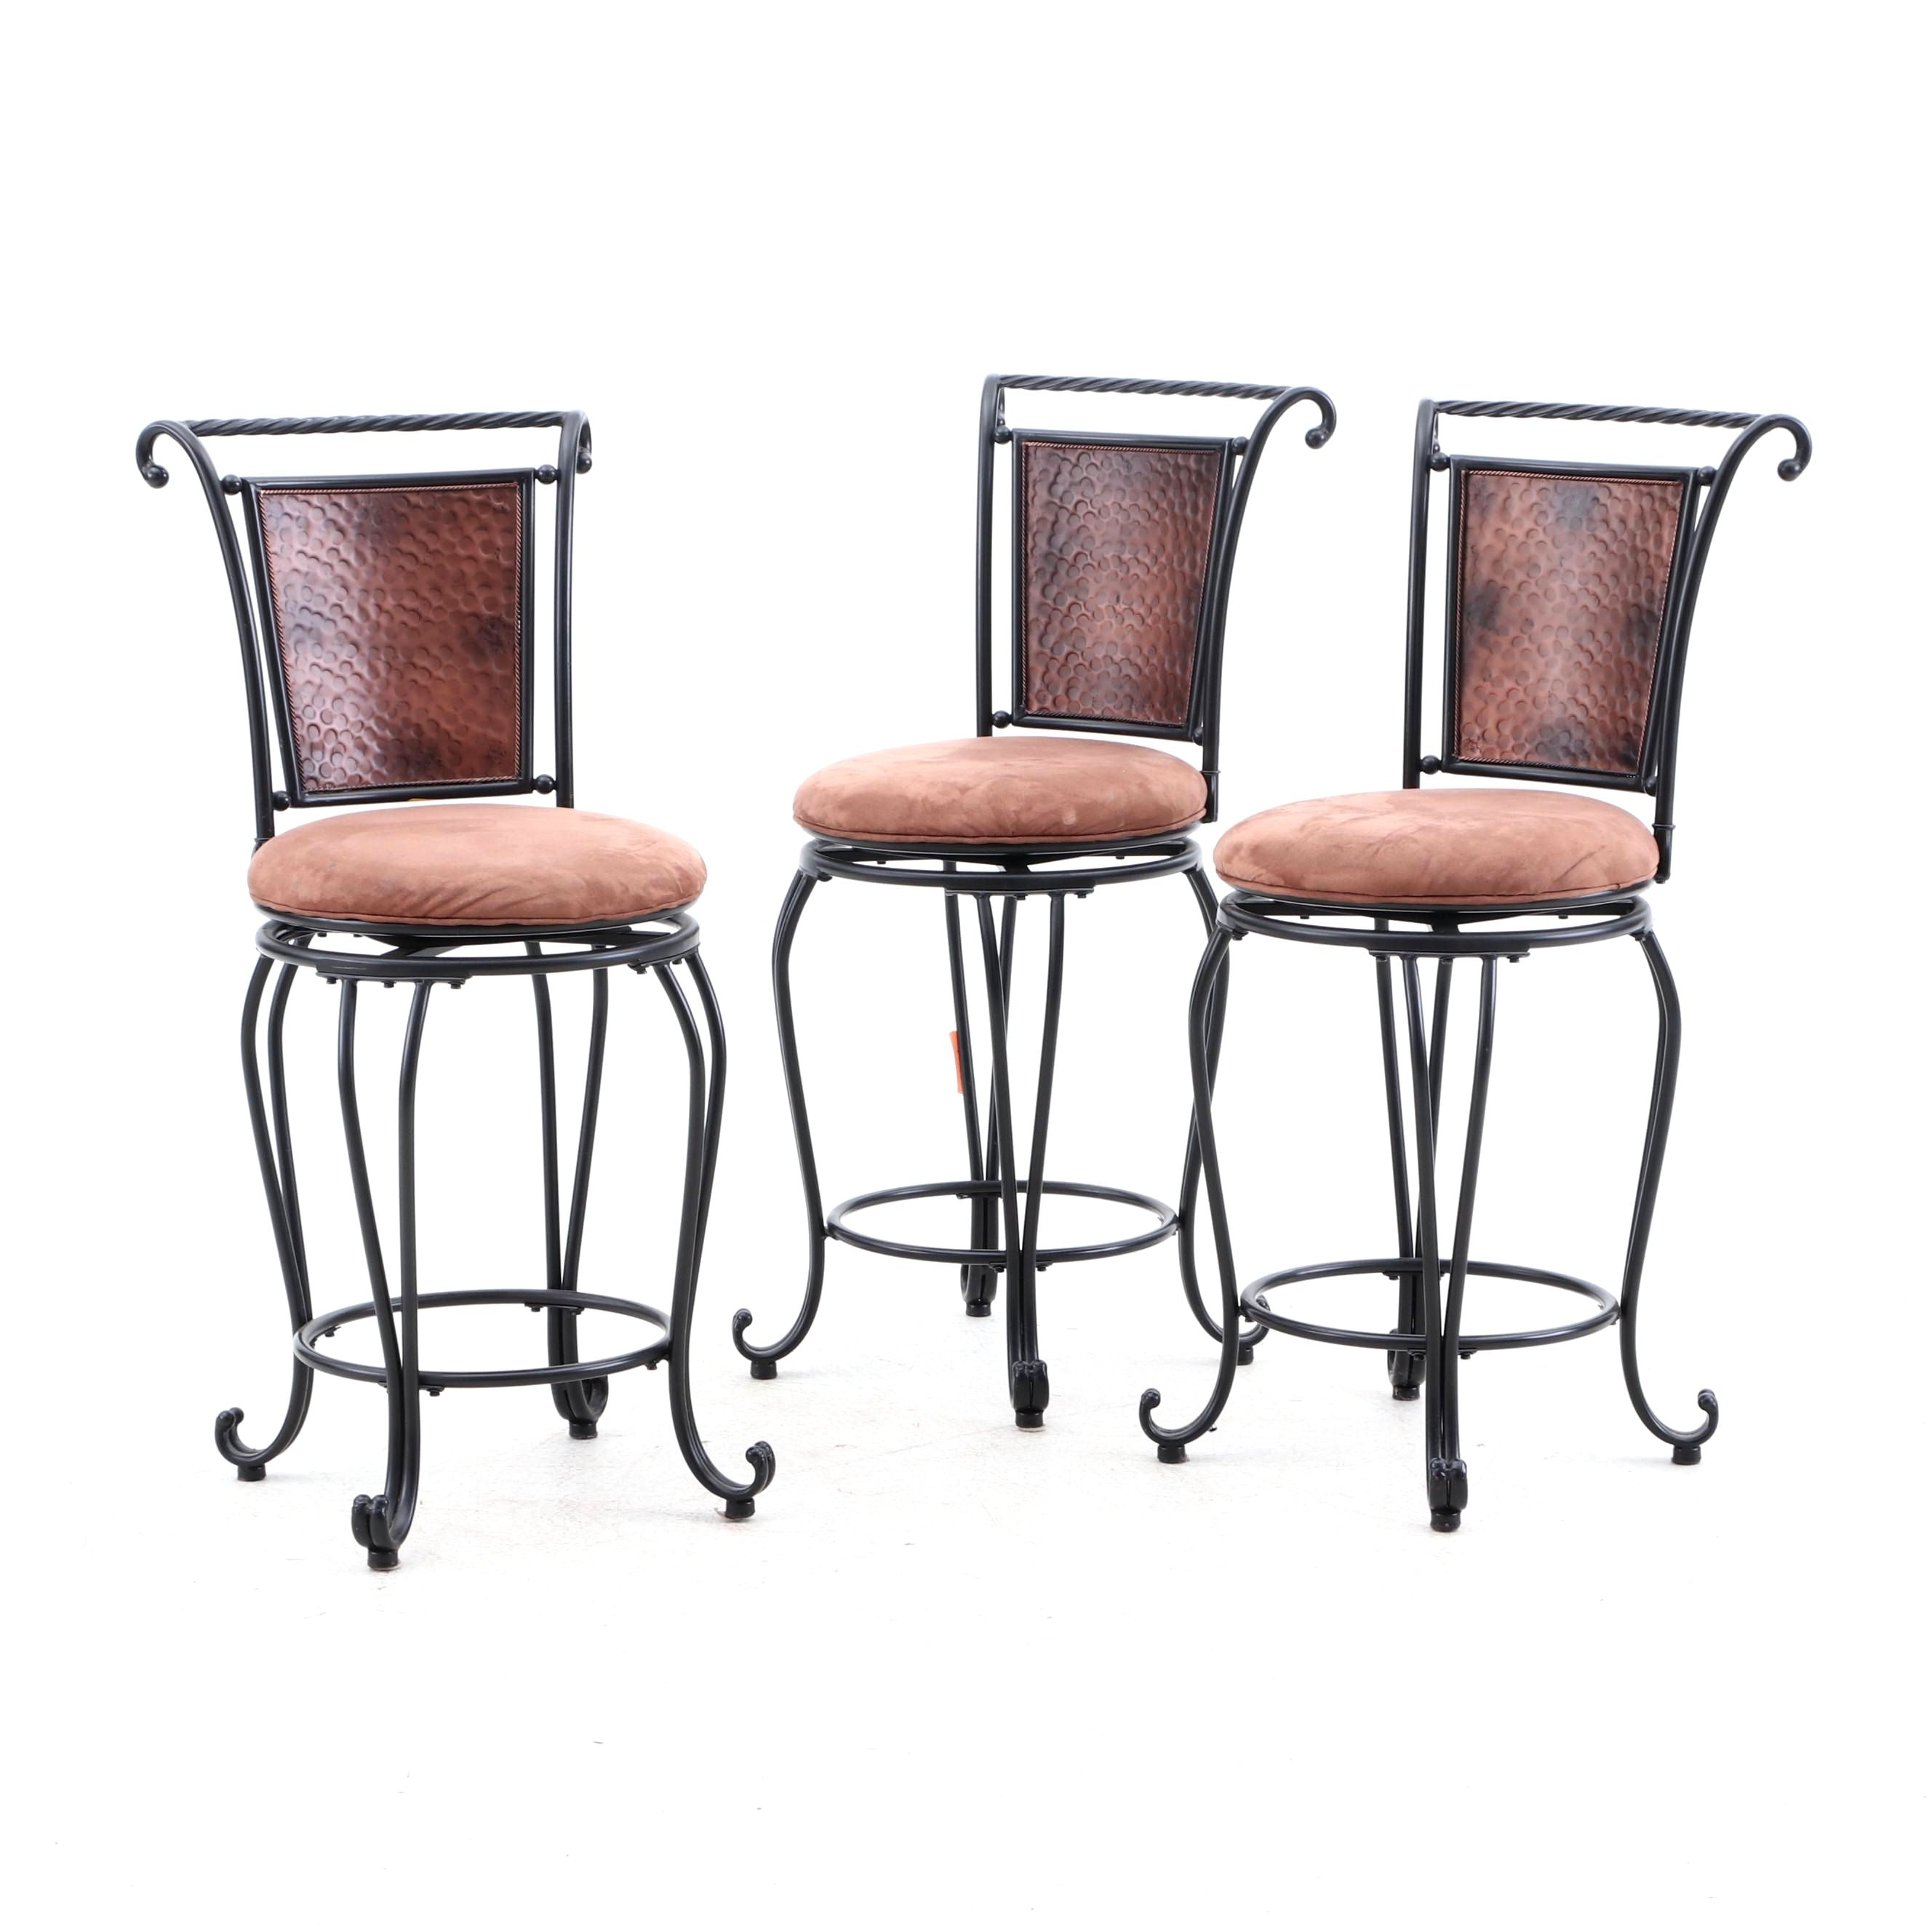 Contemporary Wrought Iron Bar Stools by Hillsdale Furniture